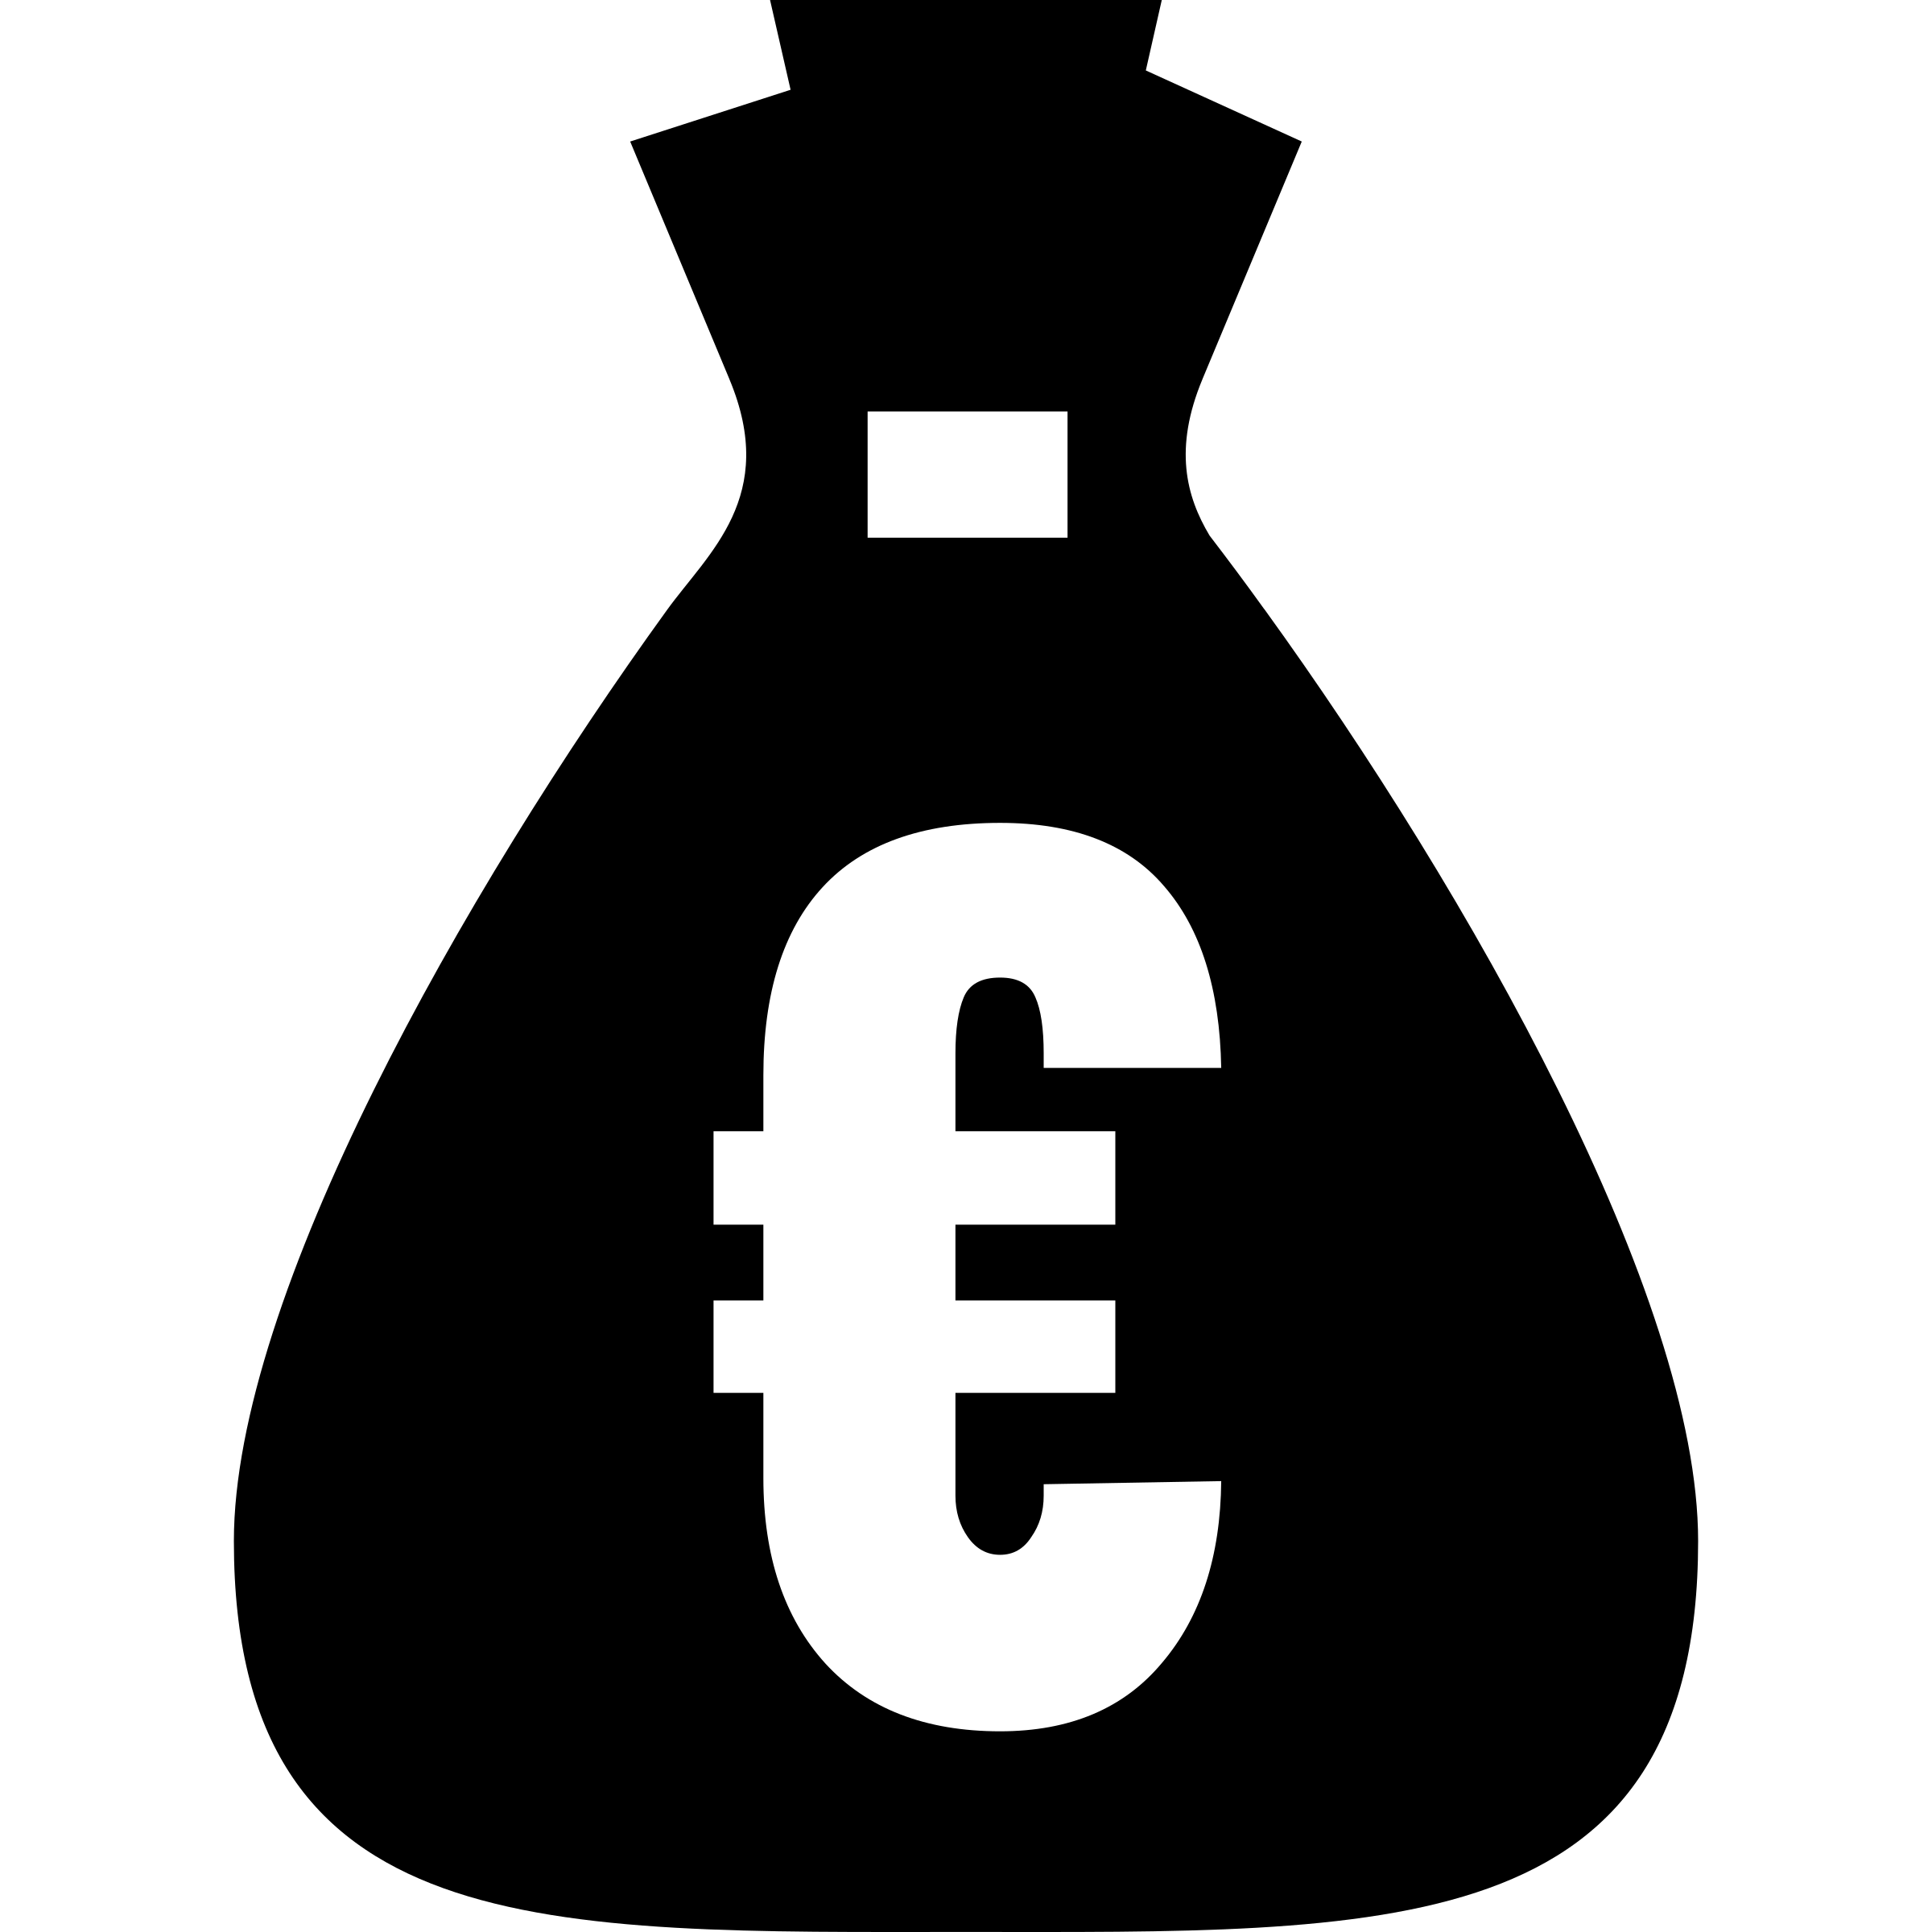 Money bag clipart png. Euro big image